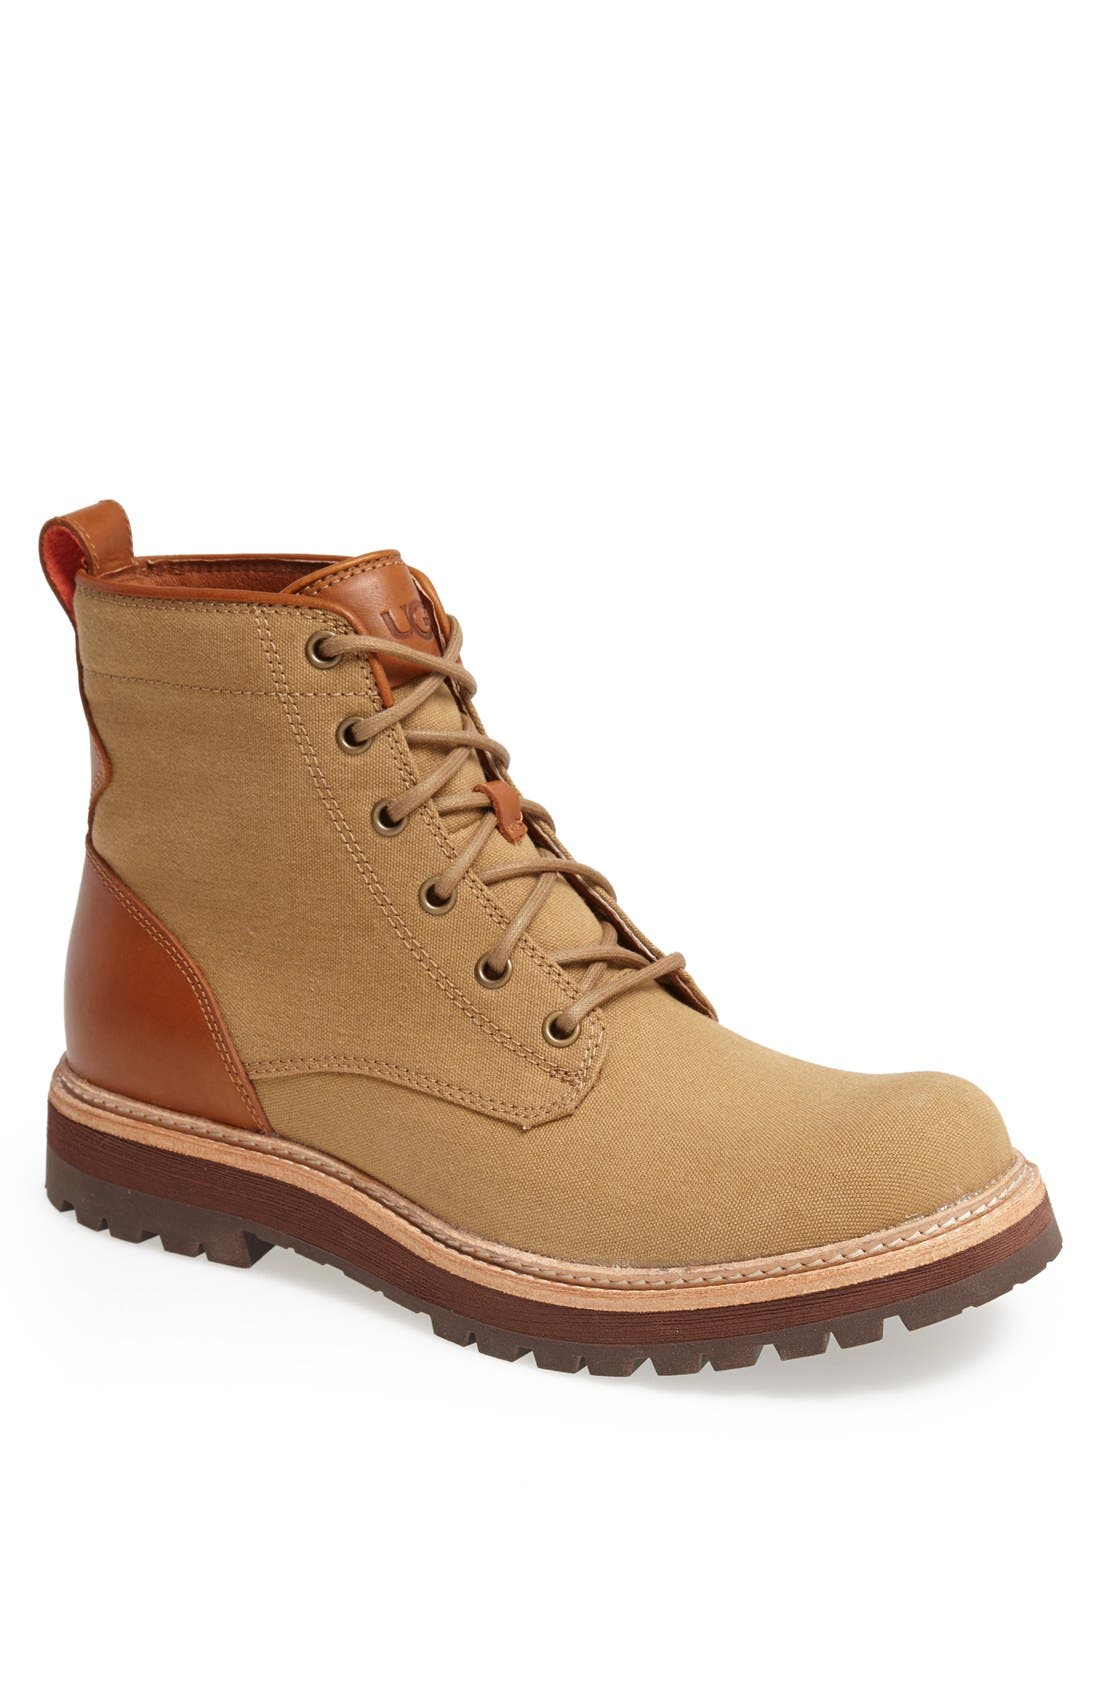 Alternate Image 1 Selected - UGG® 'Huntley' Round Toe Boot